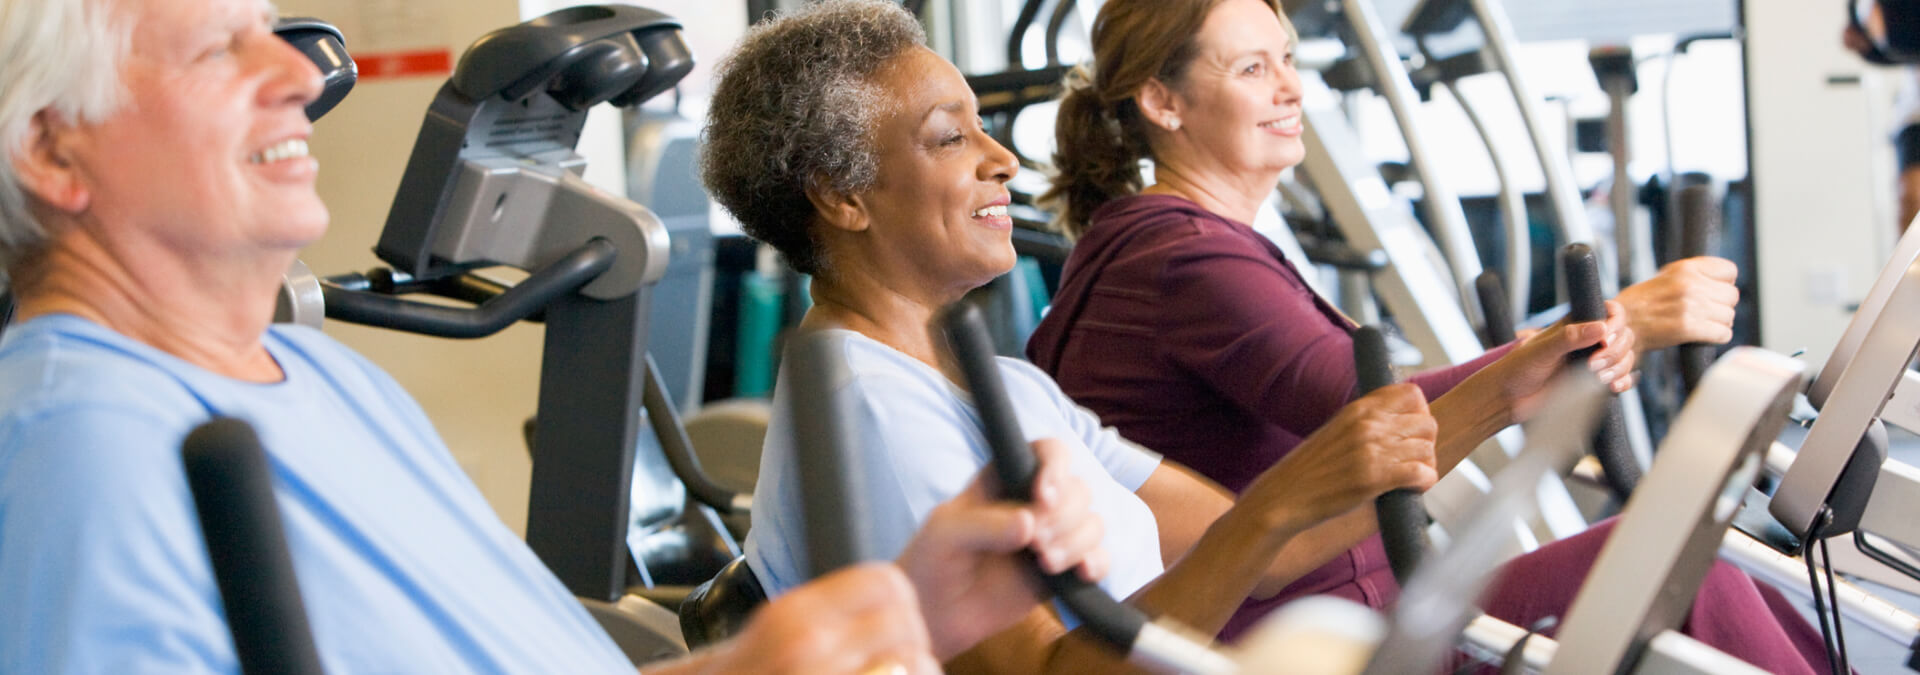 patients_working_out_gym